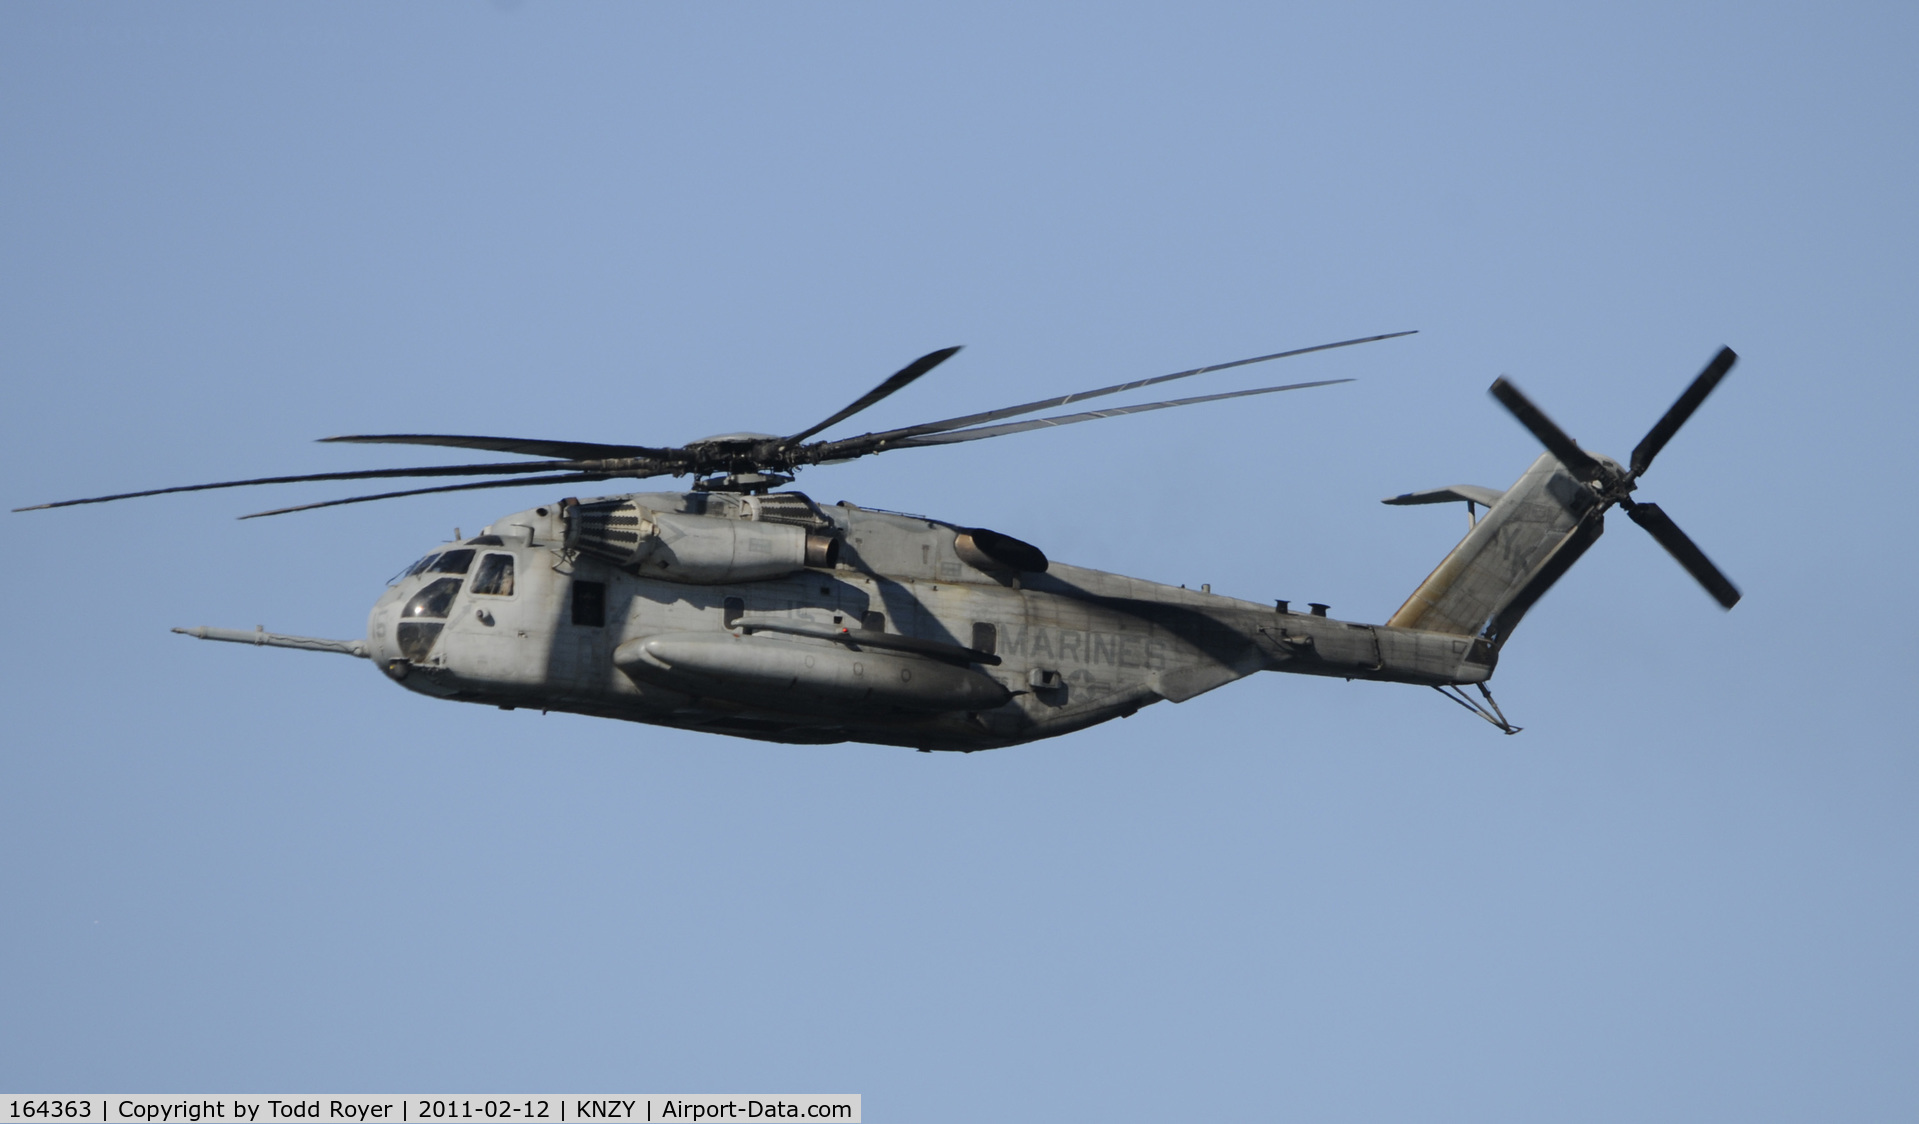 164363, Sikorsky CH-53E Super Stallion C/N 65-592, Centennial of Naval Aviation